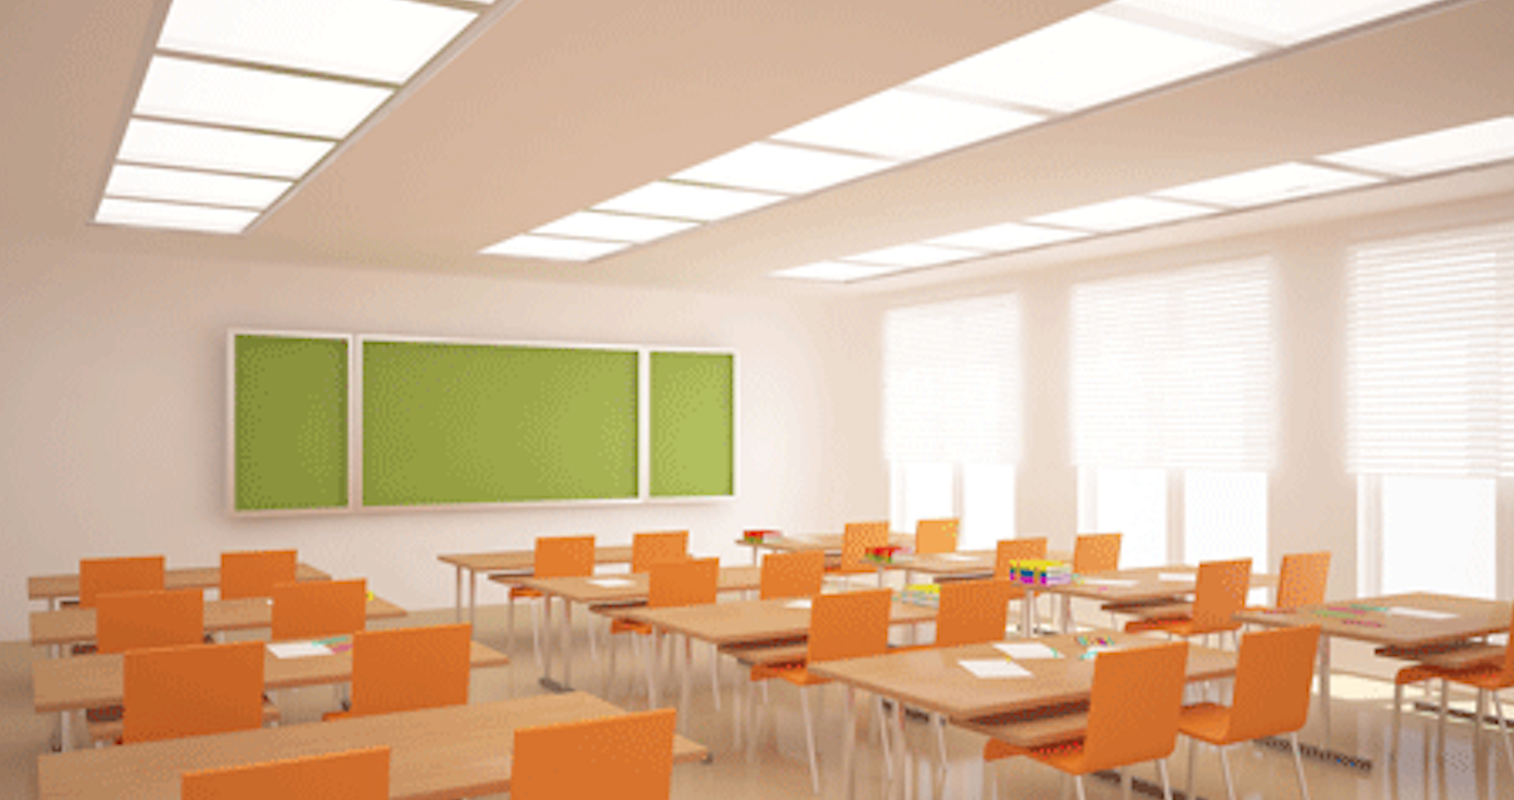 Classroom Lighting Design : Lighting classrooms of the future lunch n learn